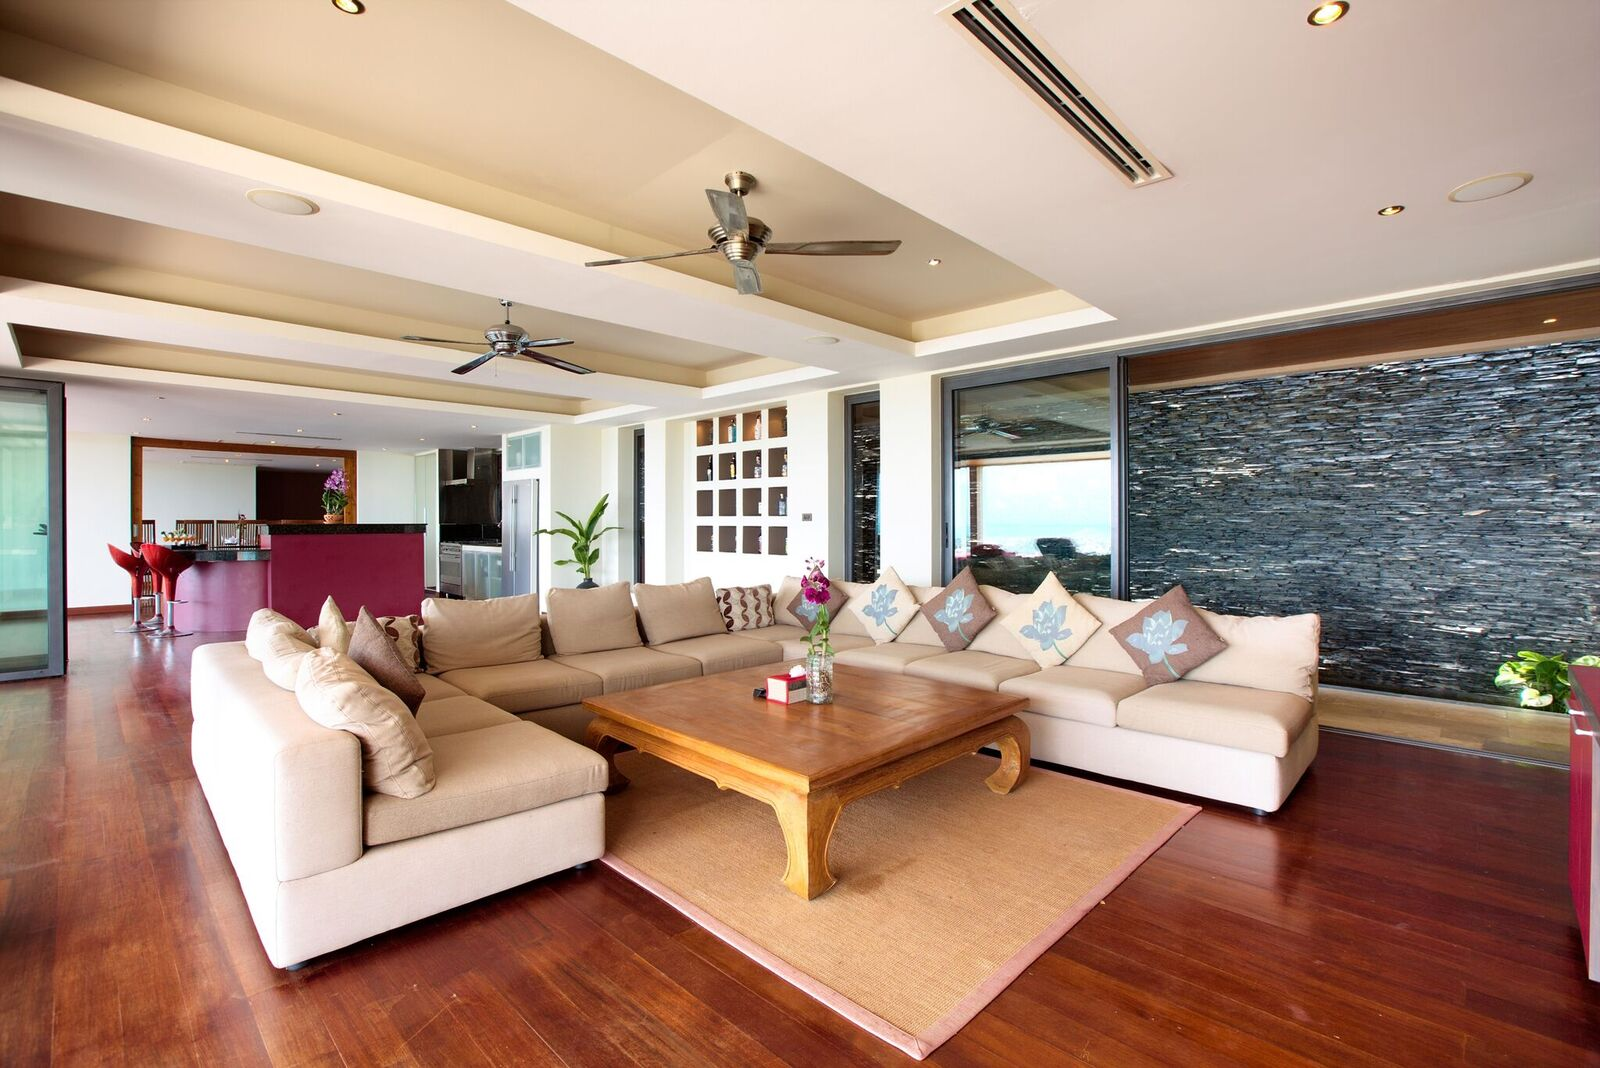 3 Bedroom Option Sea View Villa with Private Pool at Bophut Hills Koh Samui